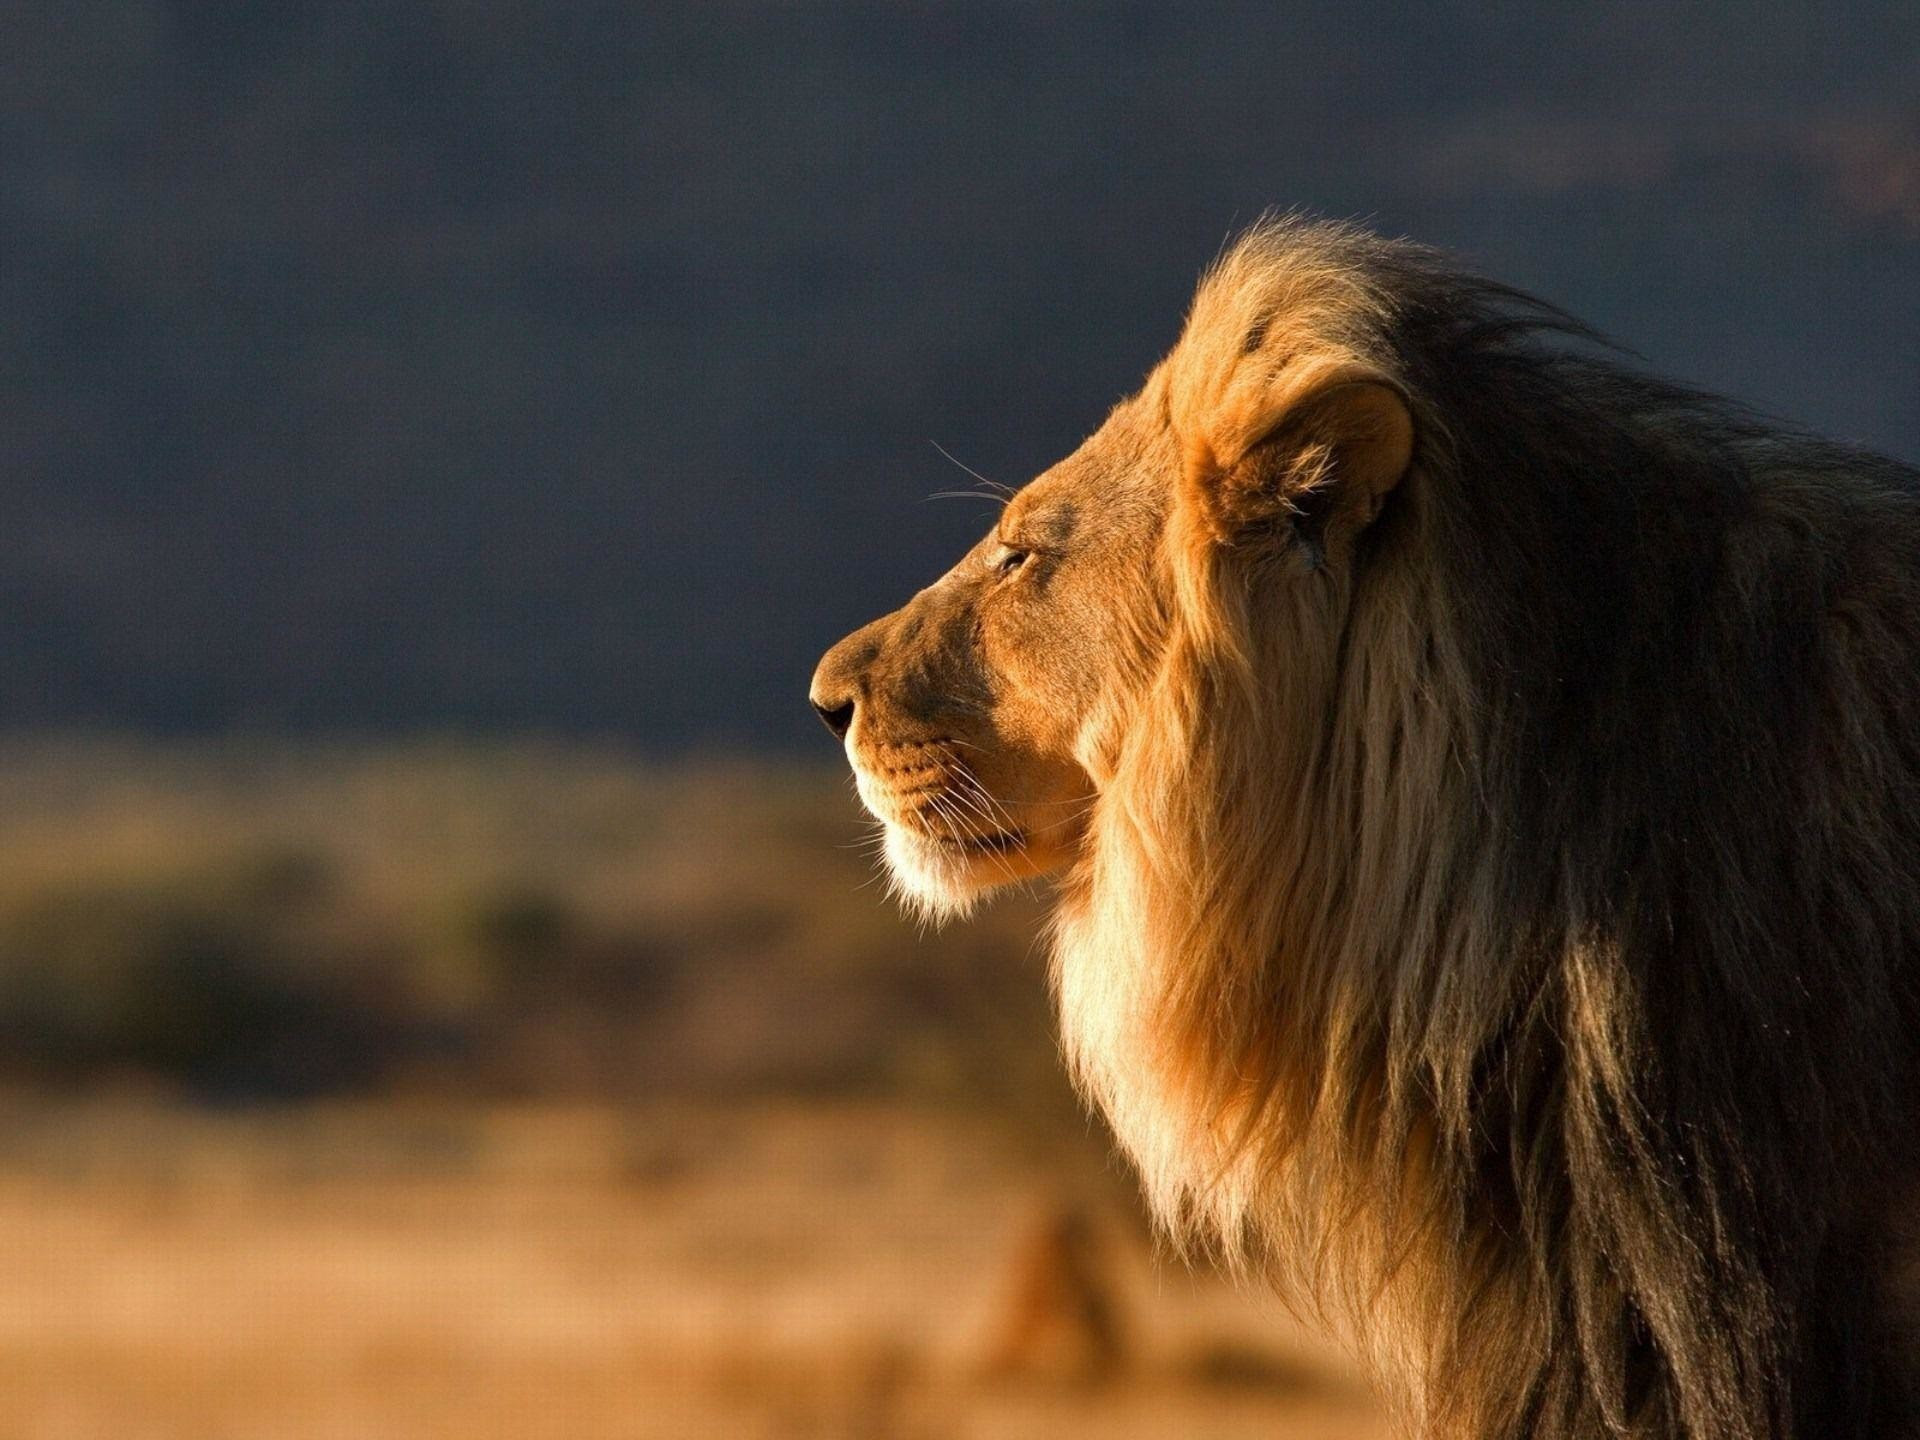 Wallpapers Lion Pictures 81 Images Images, Photos, Reviews